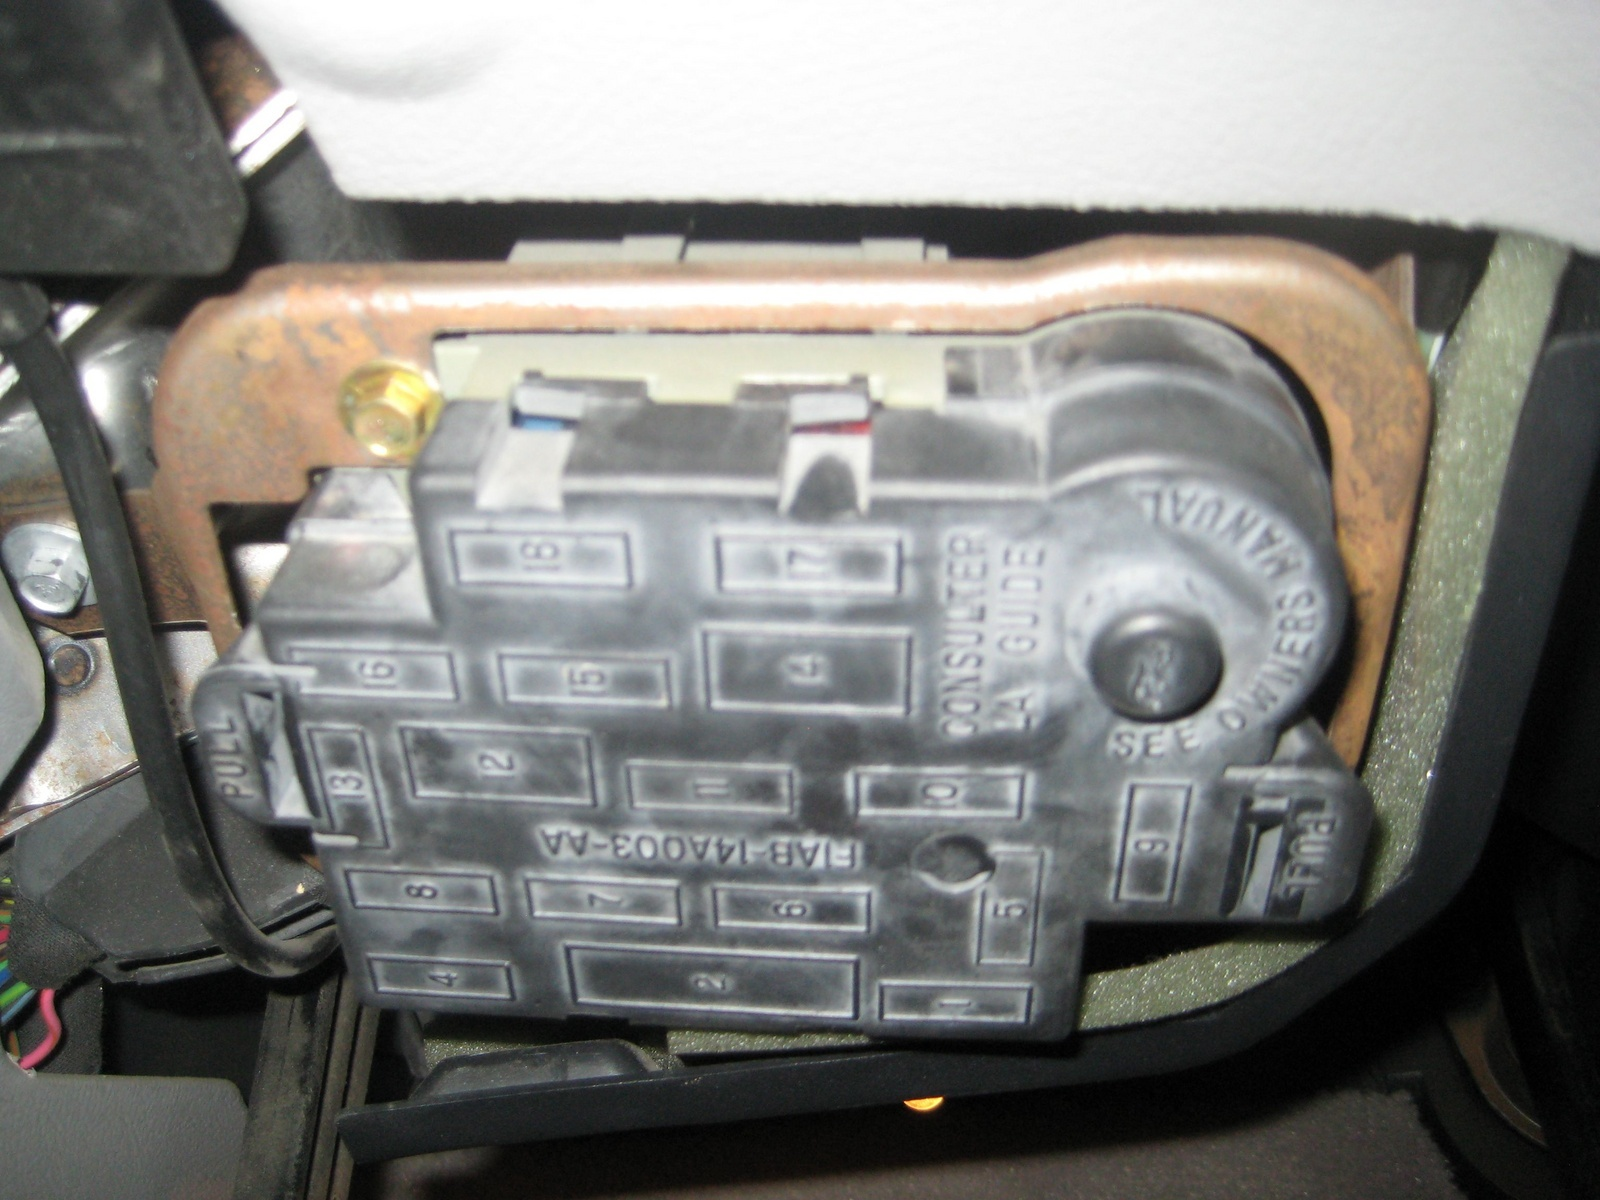 1996 Grand Marquis Fuse Box Wiring Diagram Schematics 1997 Mercury Questions How Do I Open The Inside Crown Victoria